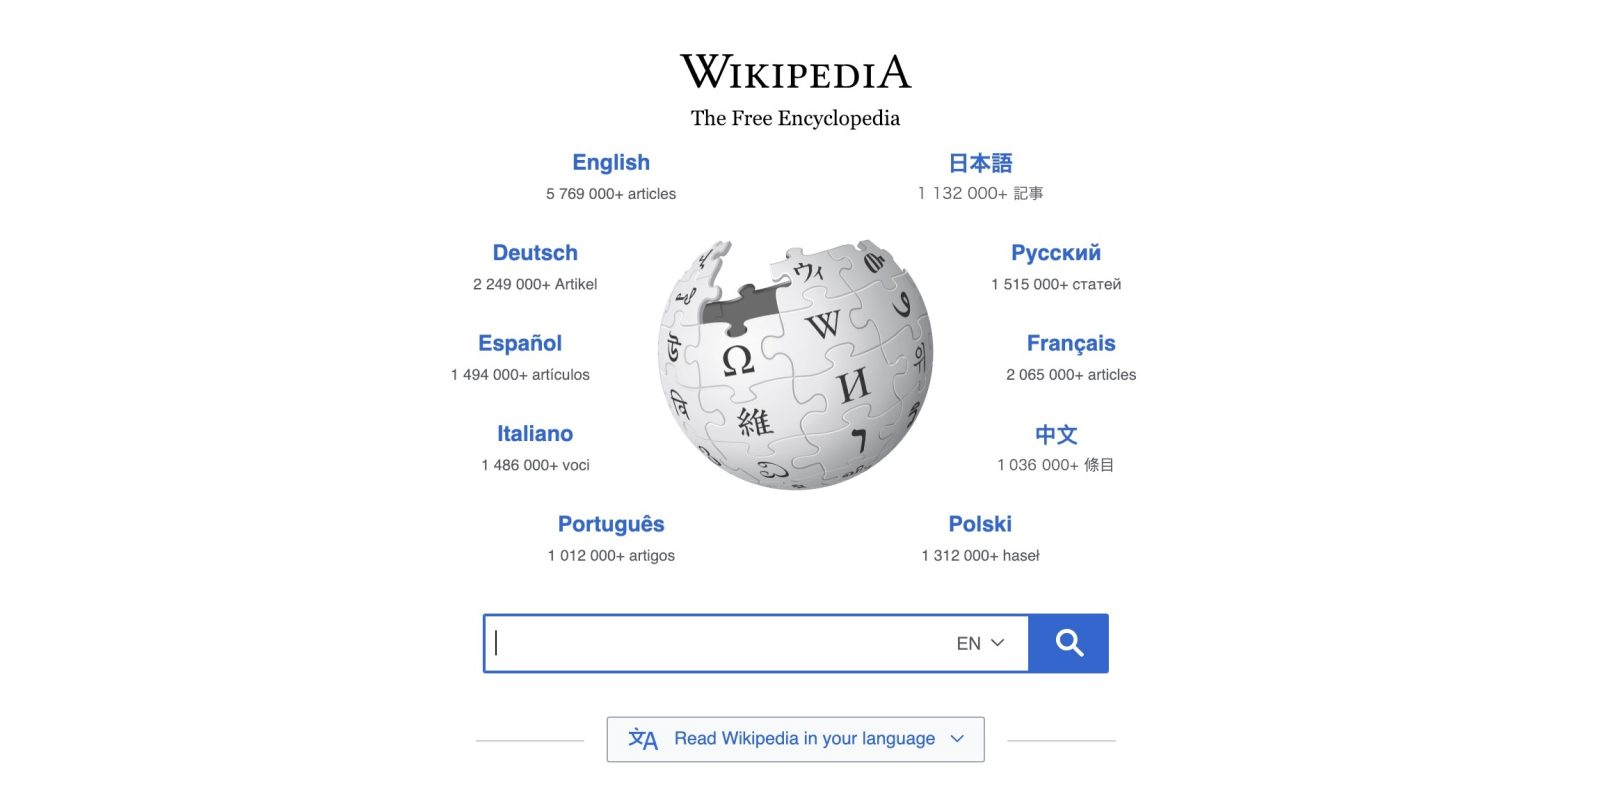 Google org donating $2 million to Wikipedia and offering